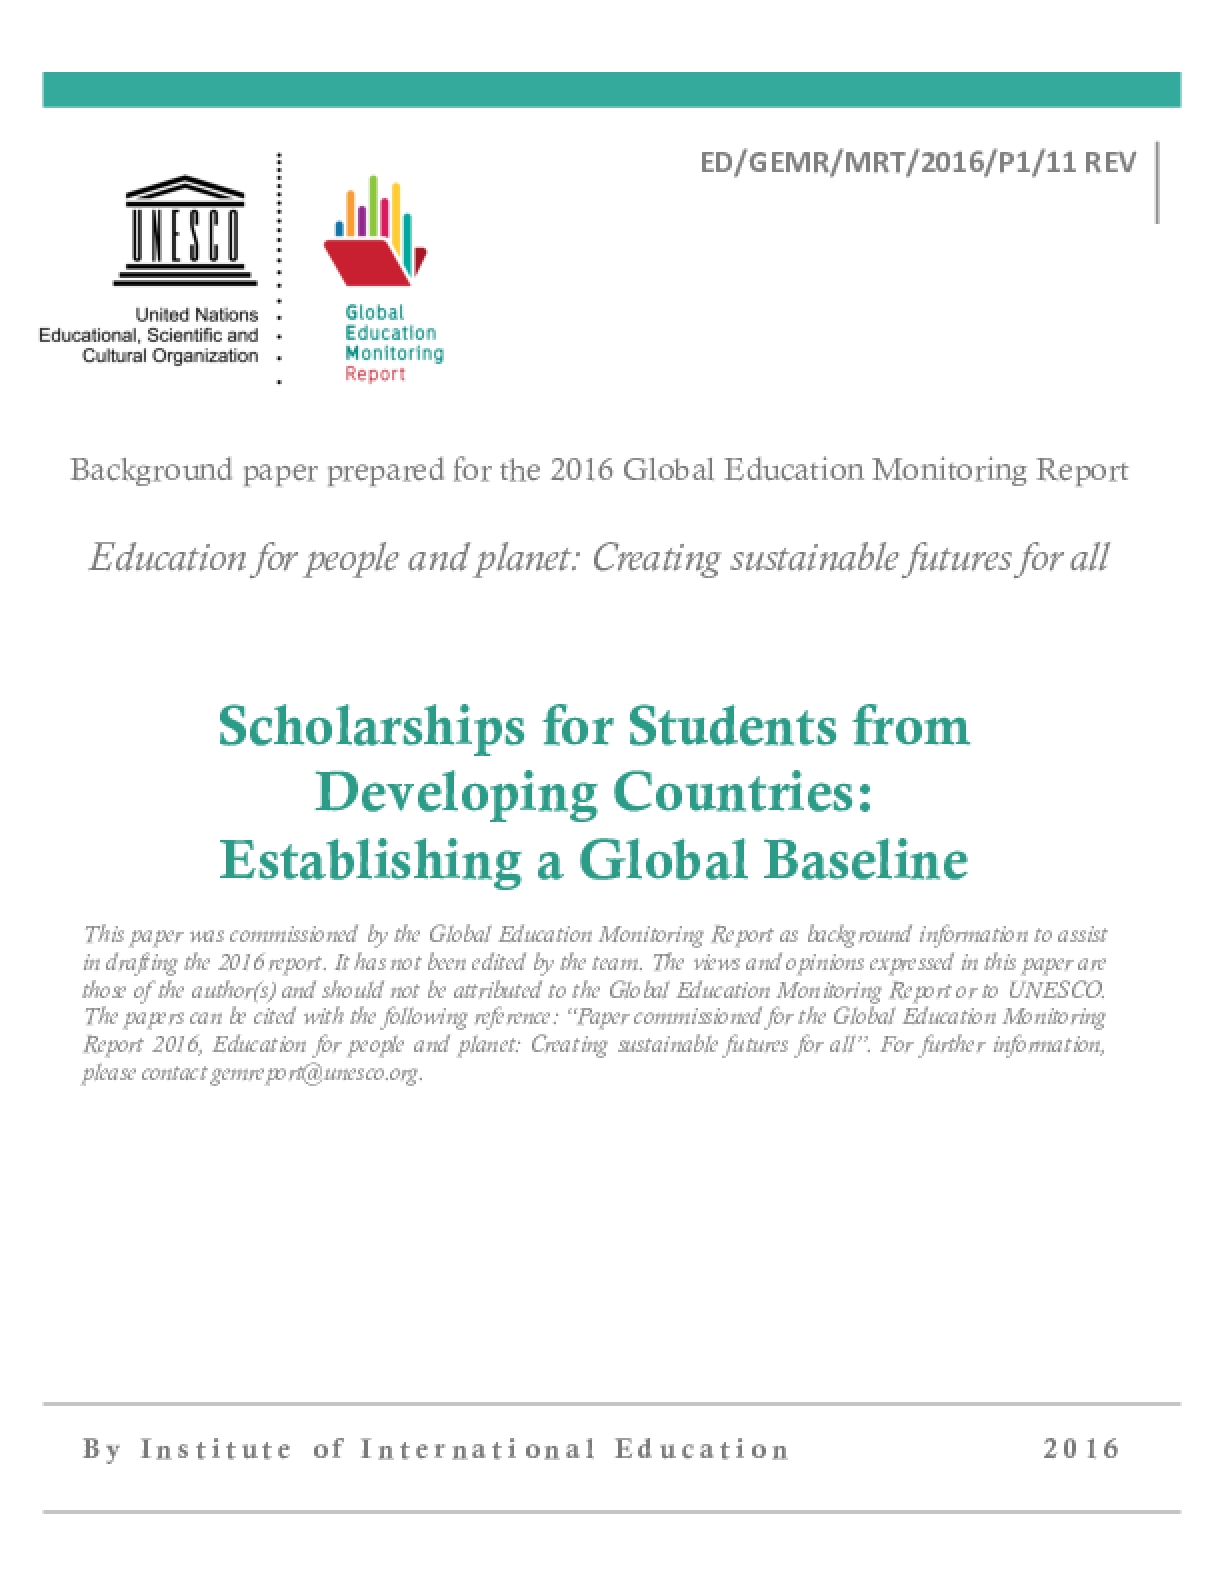 Scholarships for Students from Developing Countries: Establishing a Global Baseline